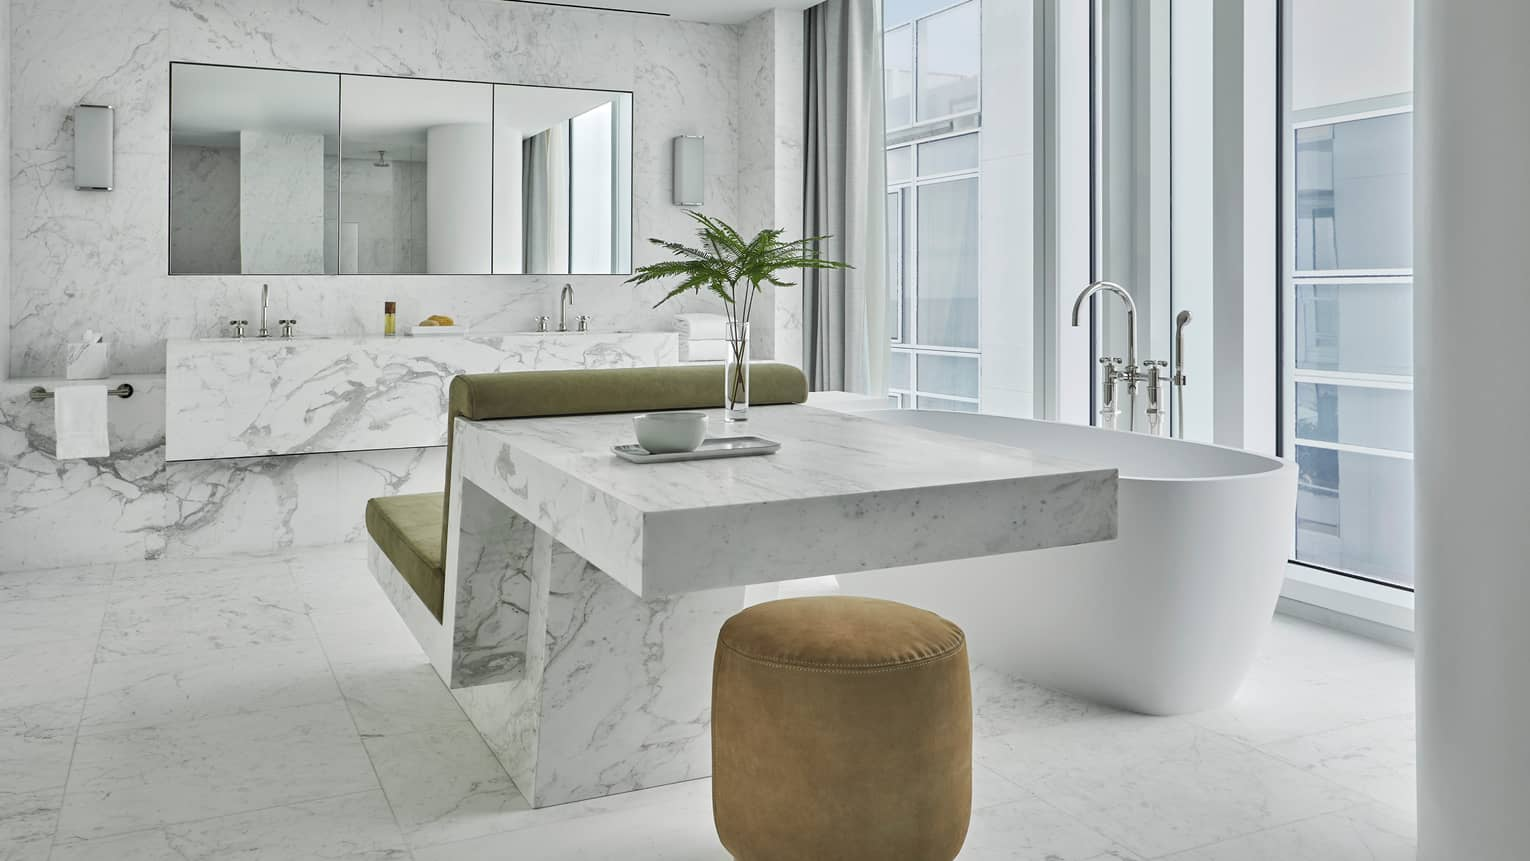 Large, modern white marble bathroom with vanity and sink, plush chair against counter, velvet bench